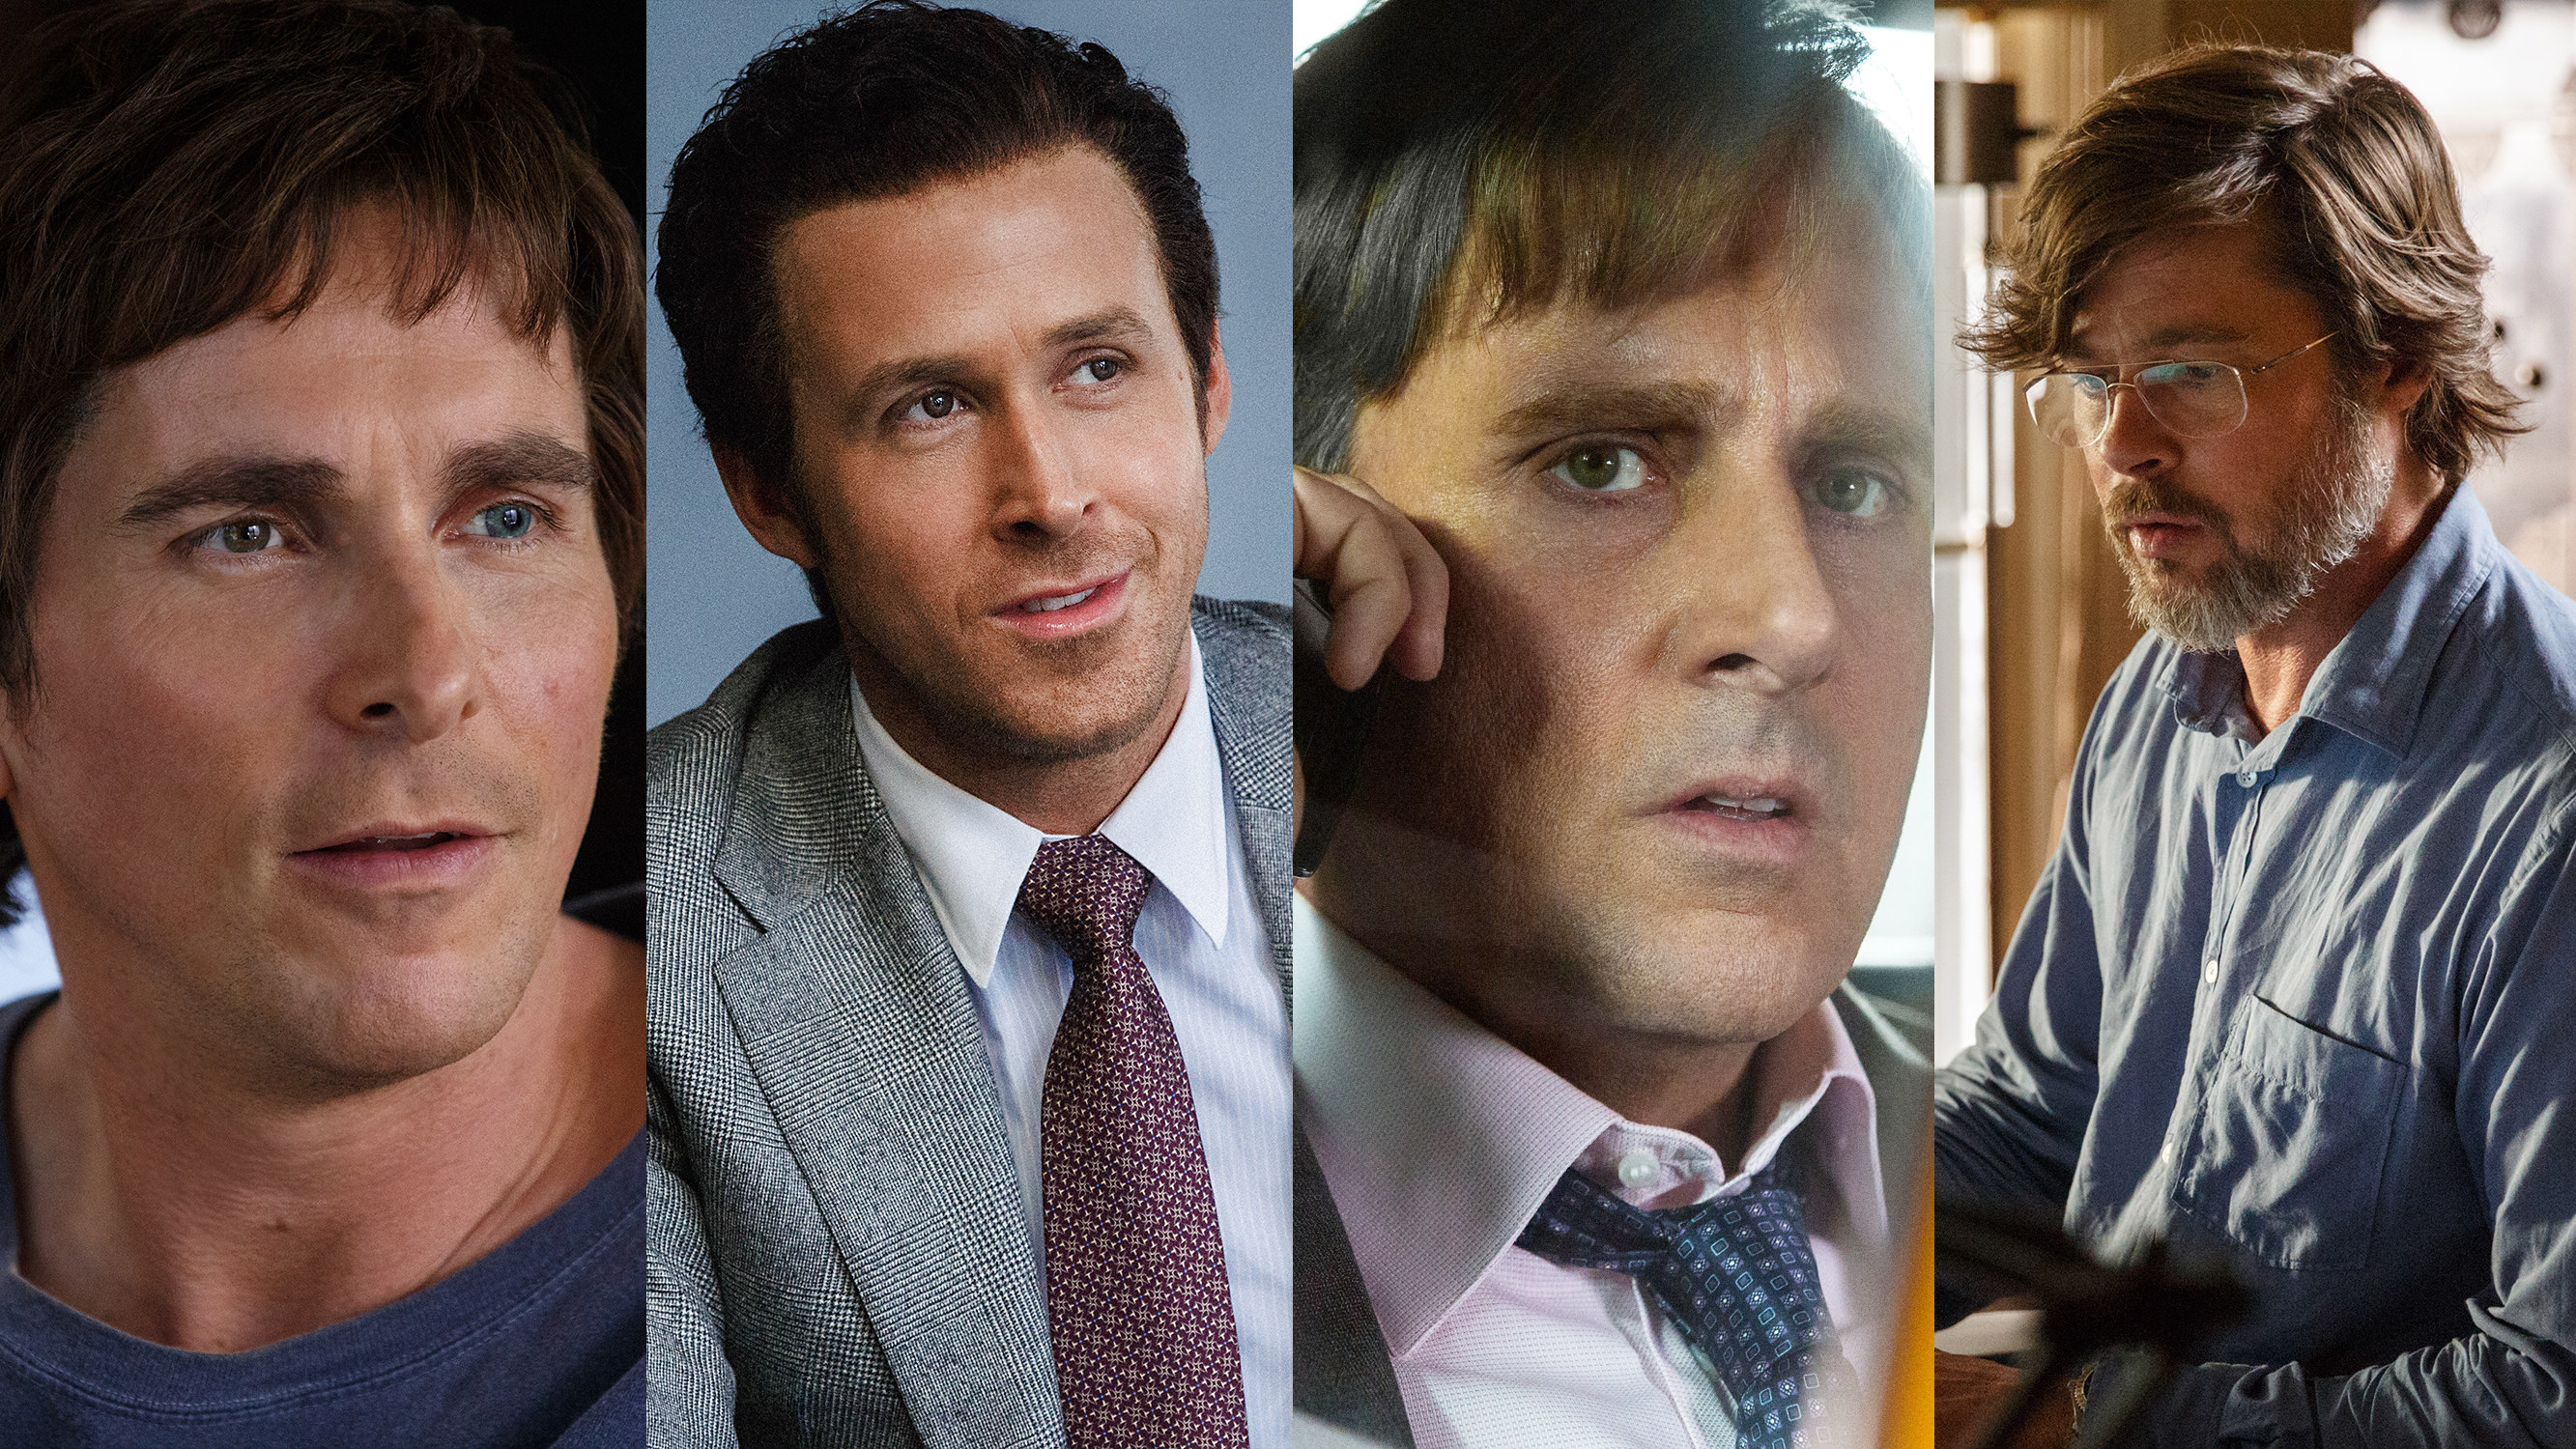 the-big-short-steve-carell-ryan-gosling-brad-pitt-christian-bale-hair